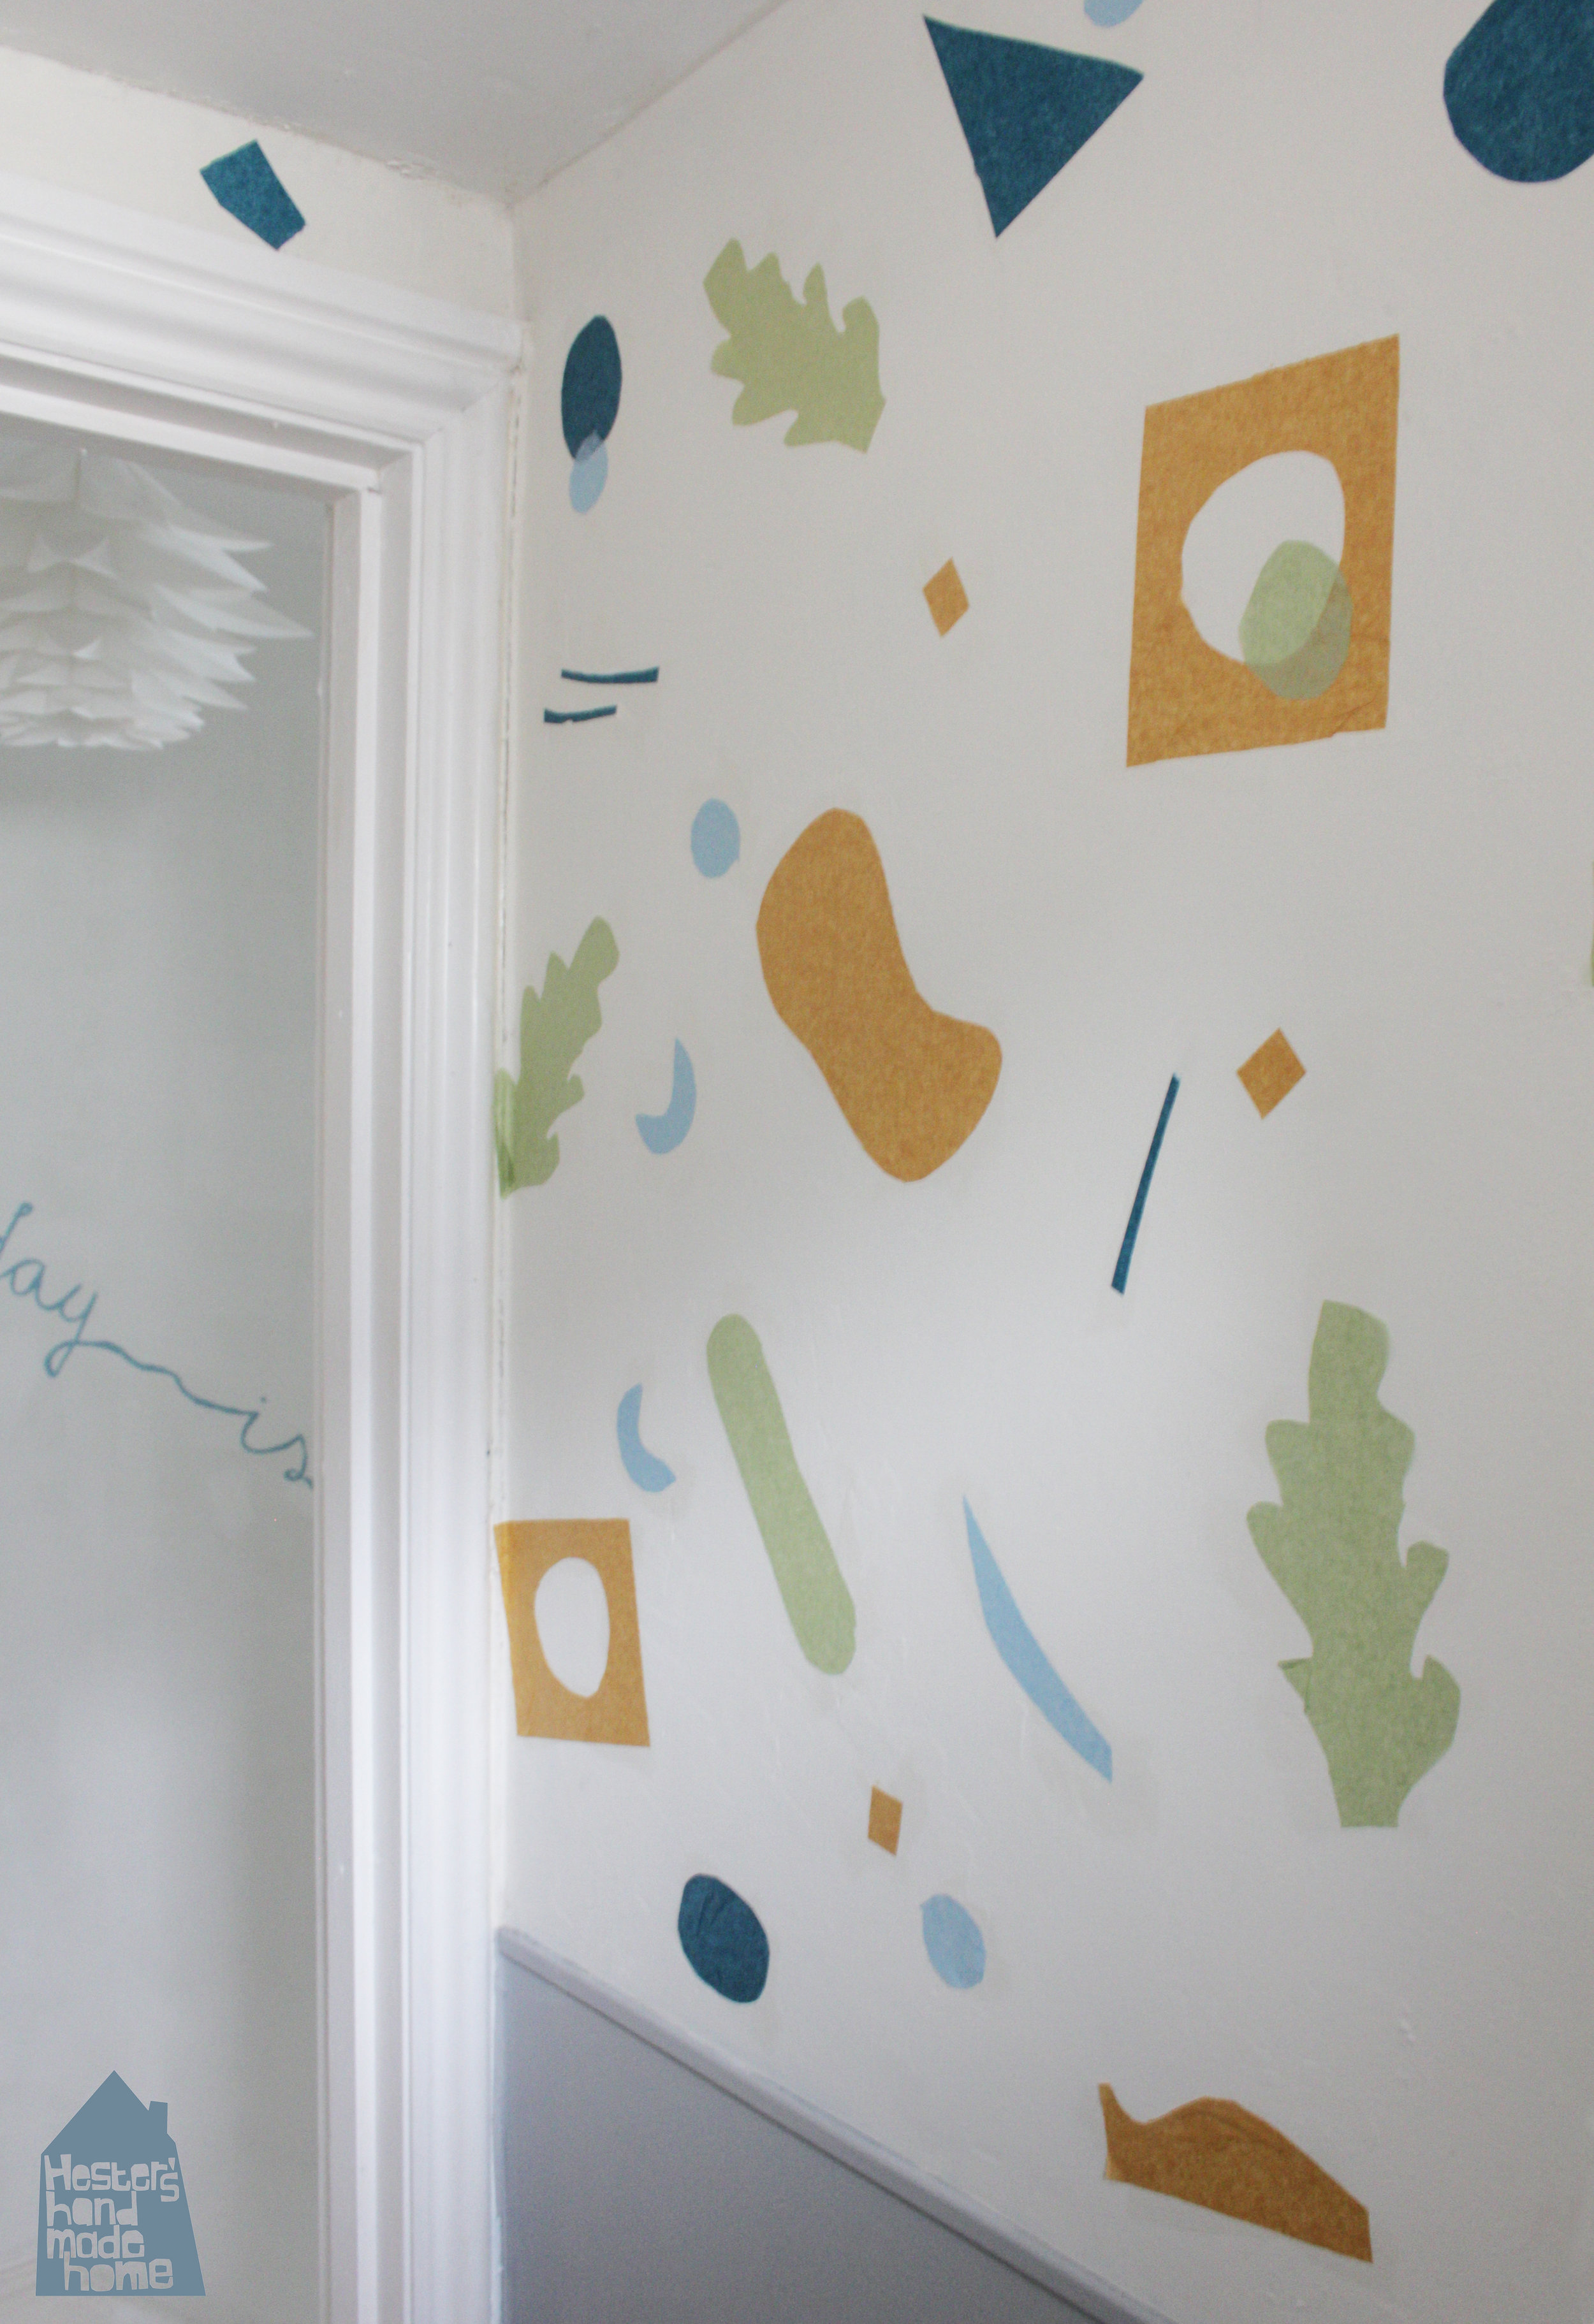 Super Easy Wall Decor by www.hestershandmadehome.com